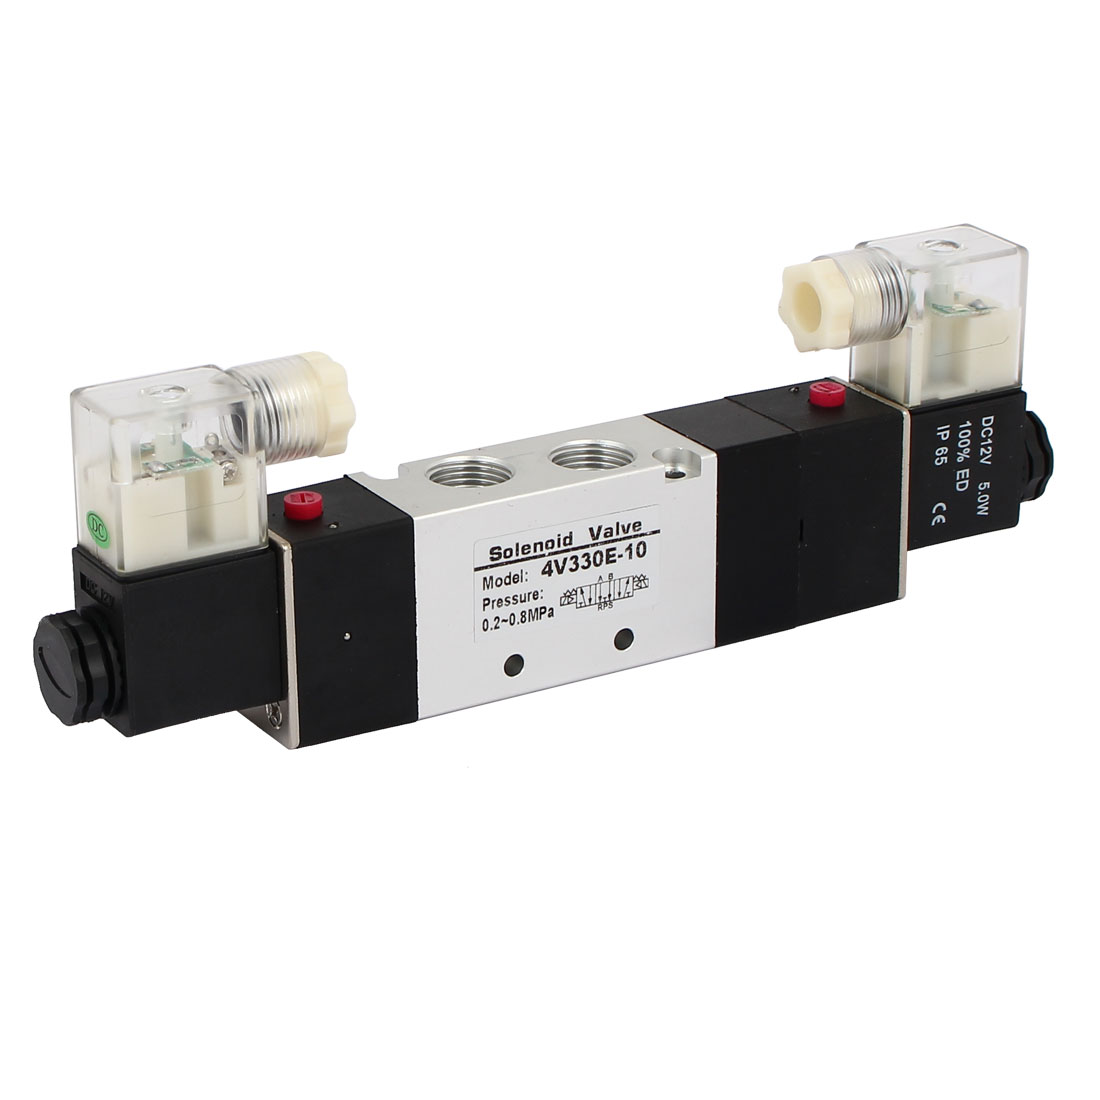 12VDC 3 Position 5 Way Double Head Pneumatic Solenoid Air Valve 4V330E-10